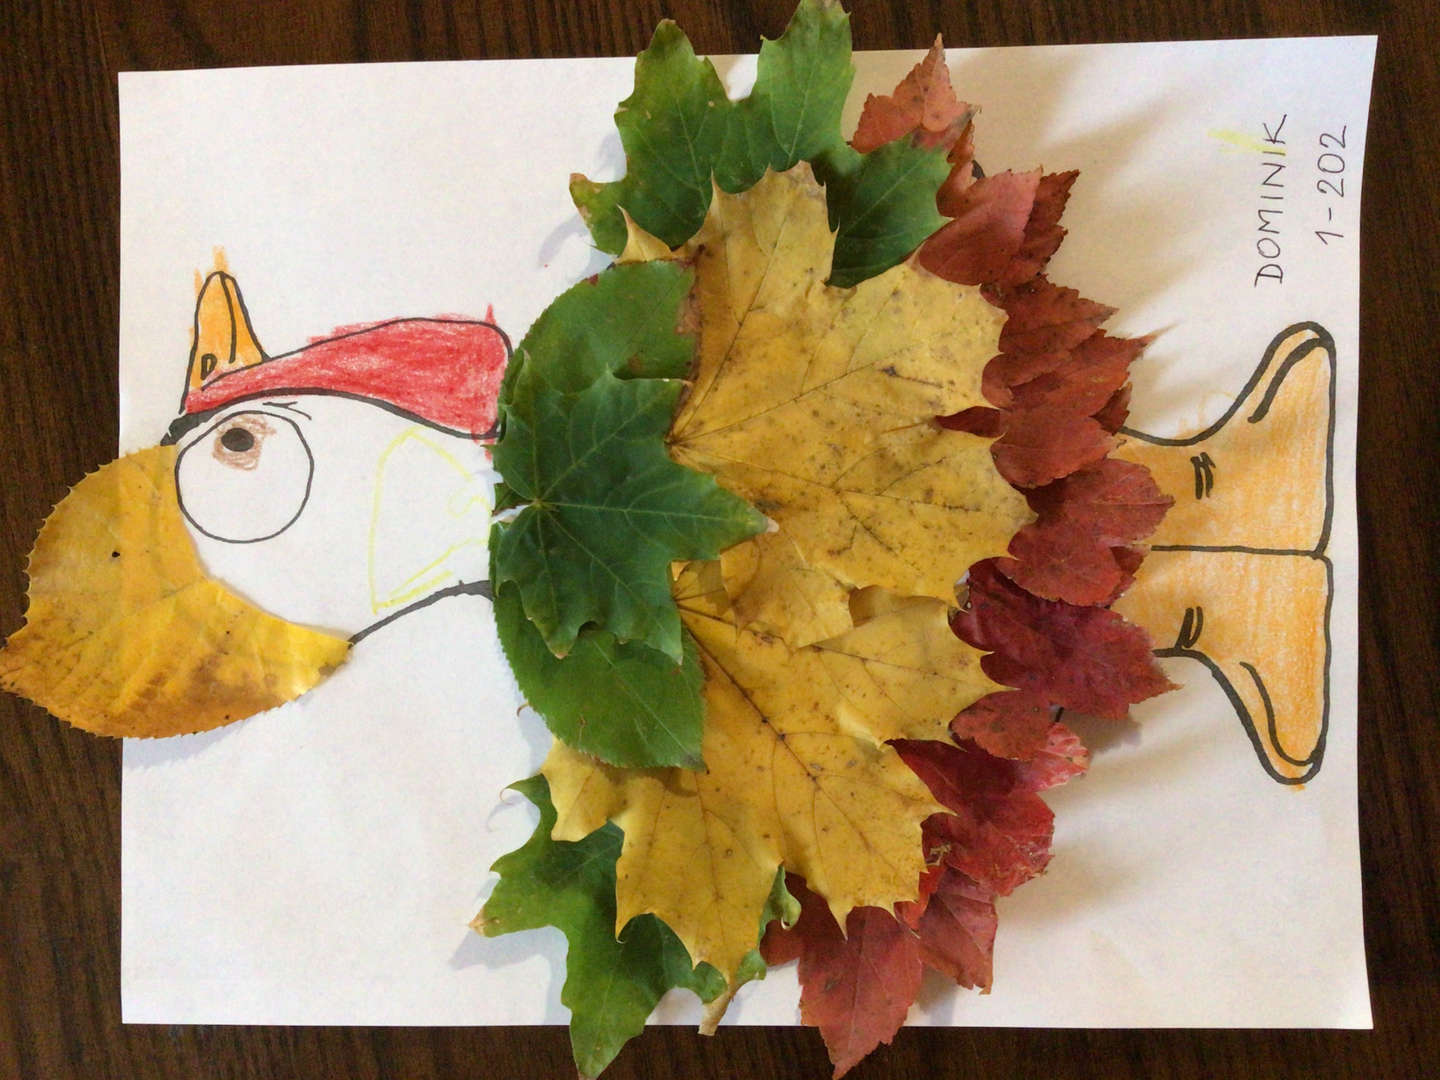 Turkey disguise with real leaves